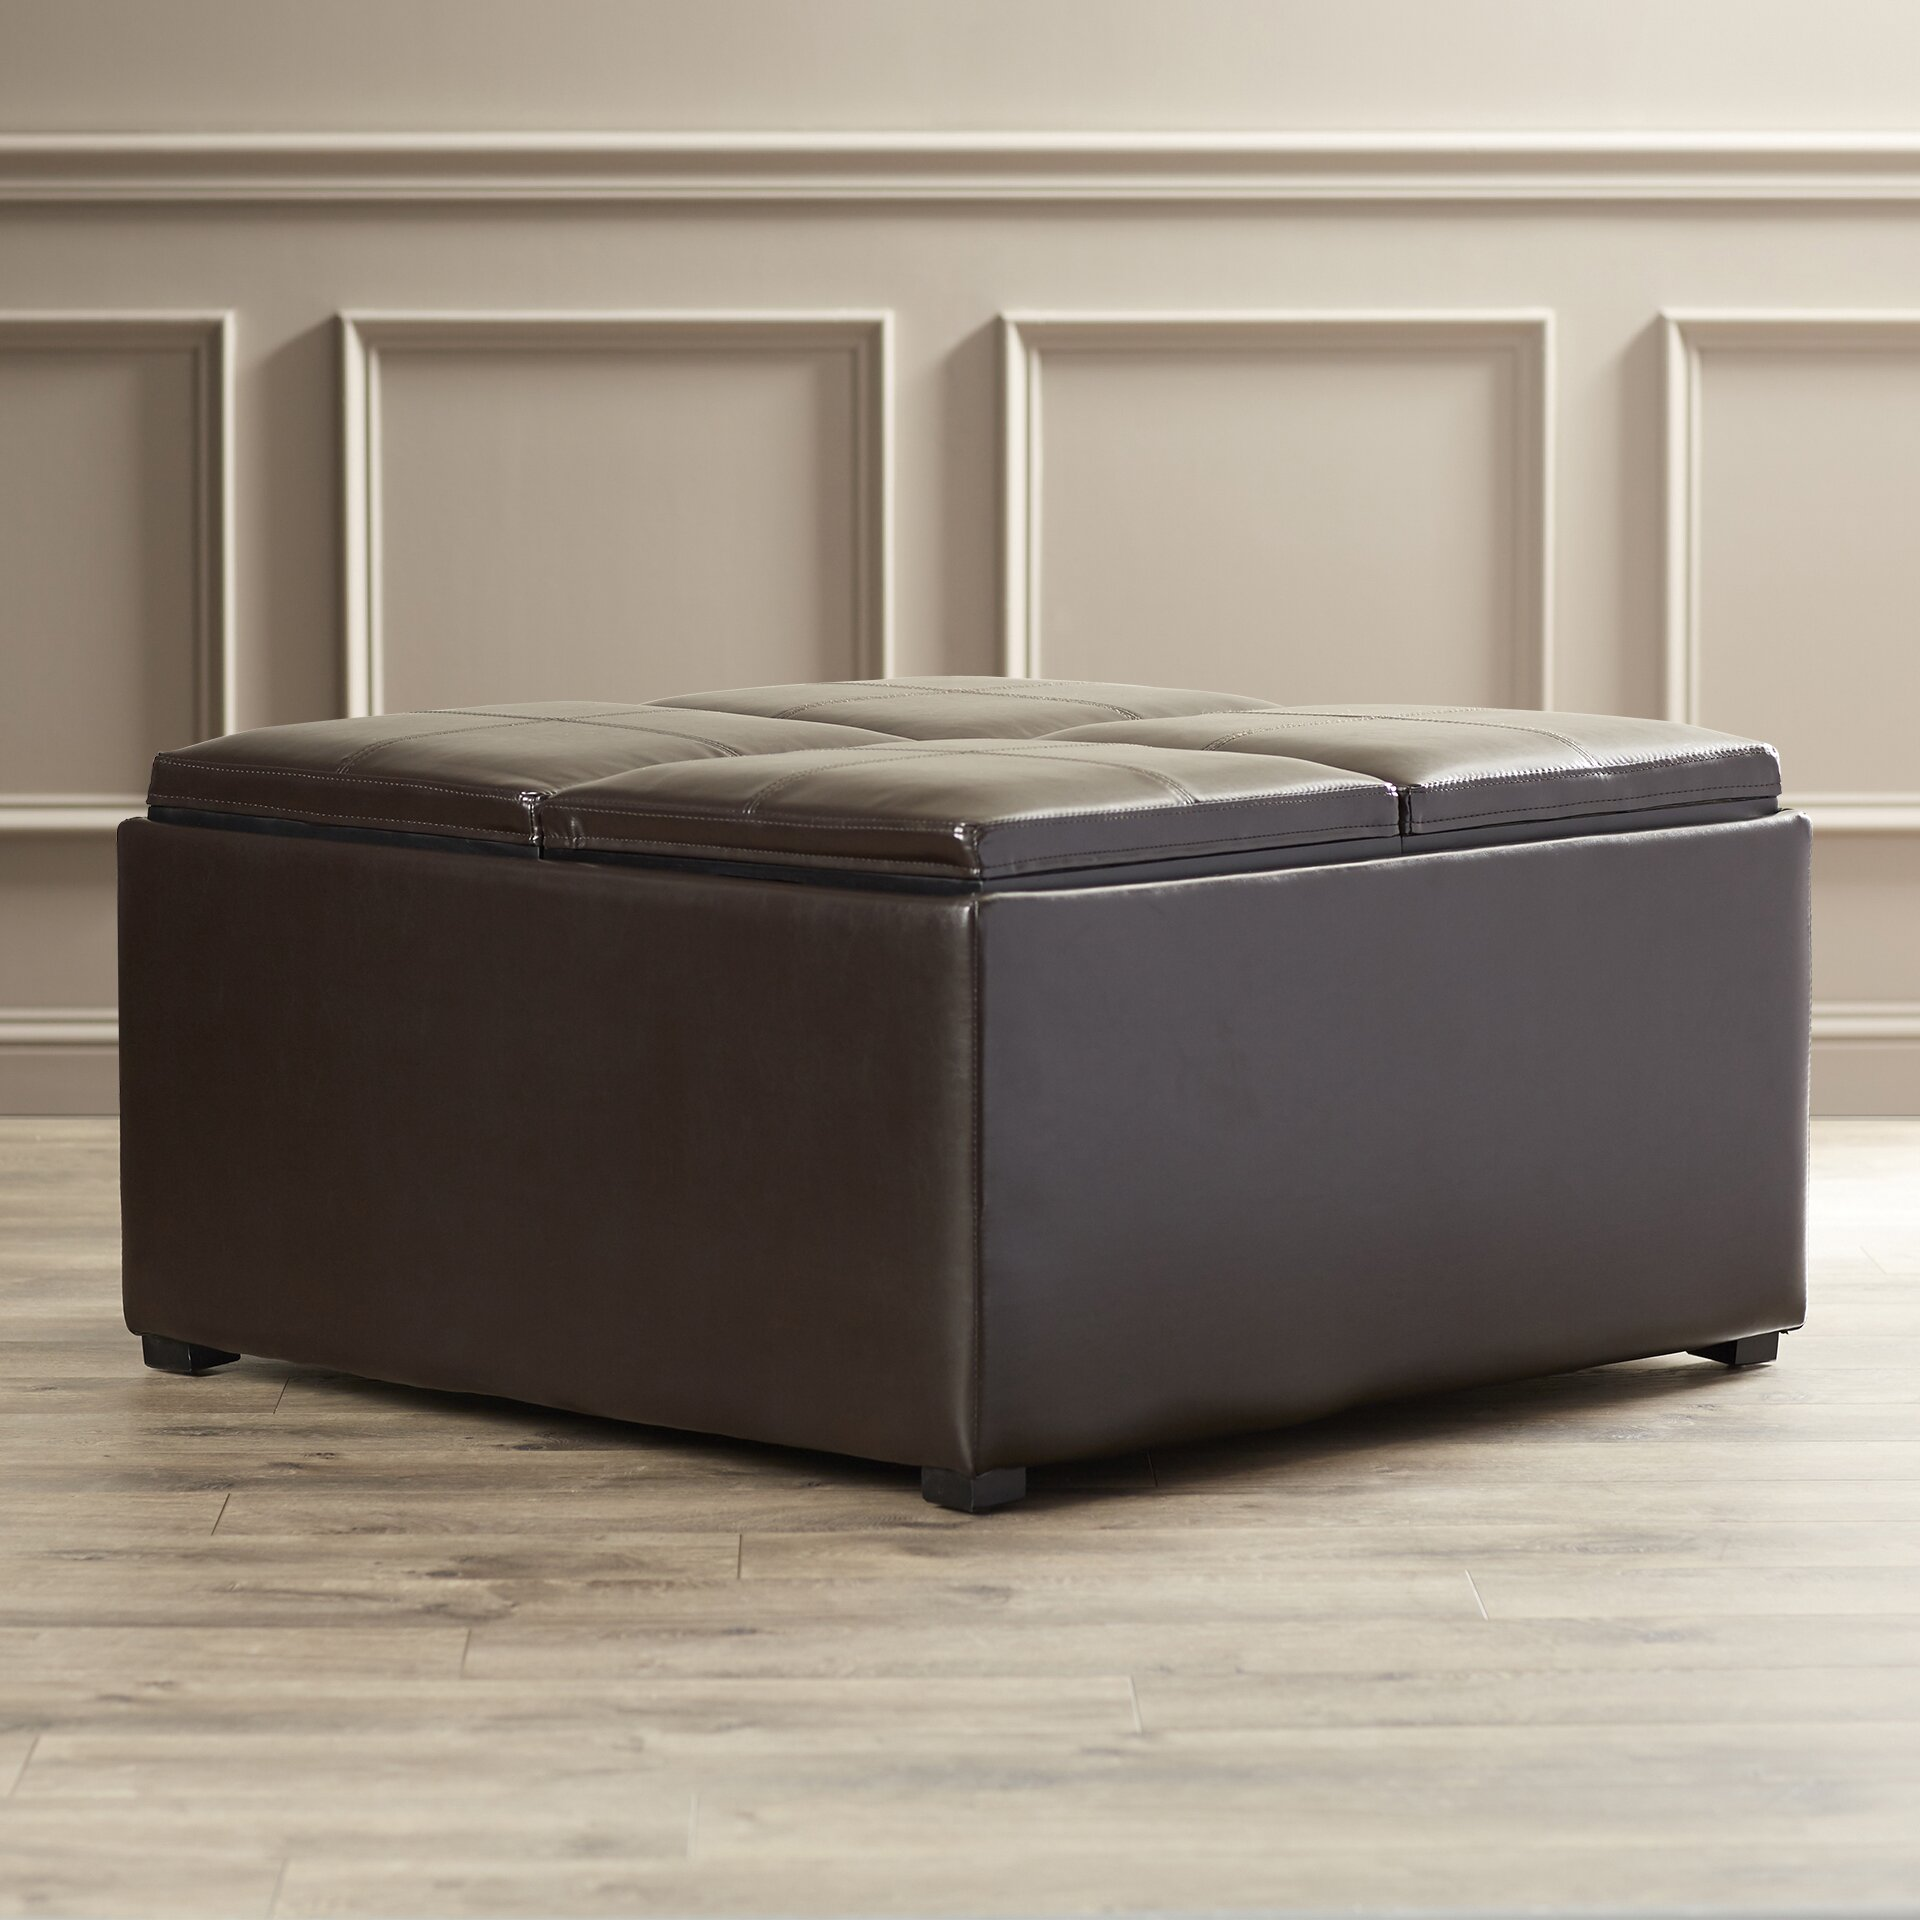 Inflatable Sofa Malta: Darby Home Co Malta Cocktail Ottoman & Reviews